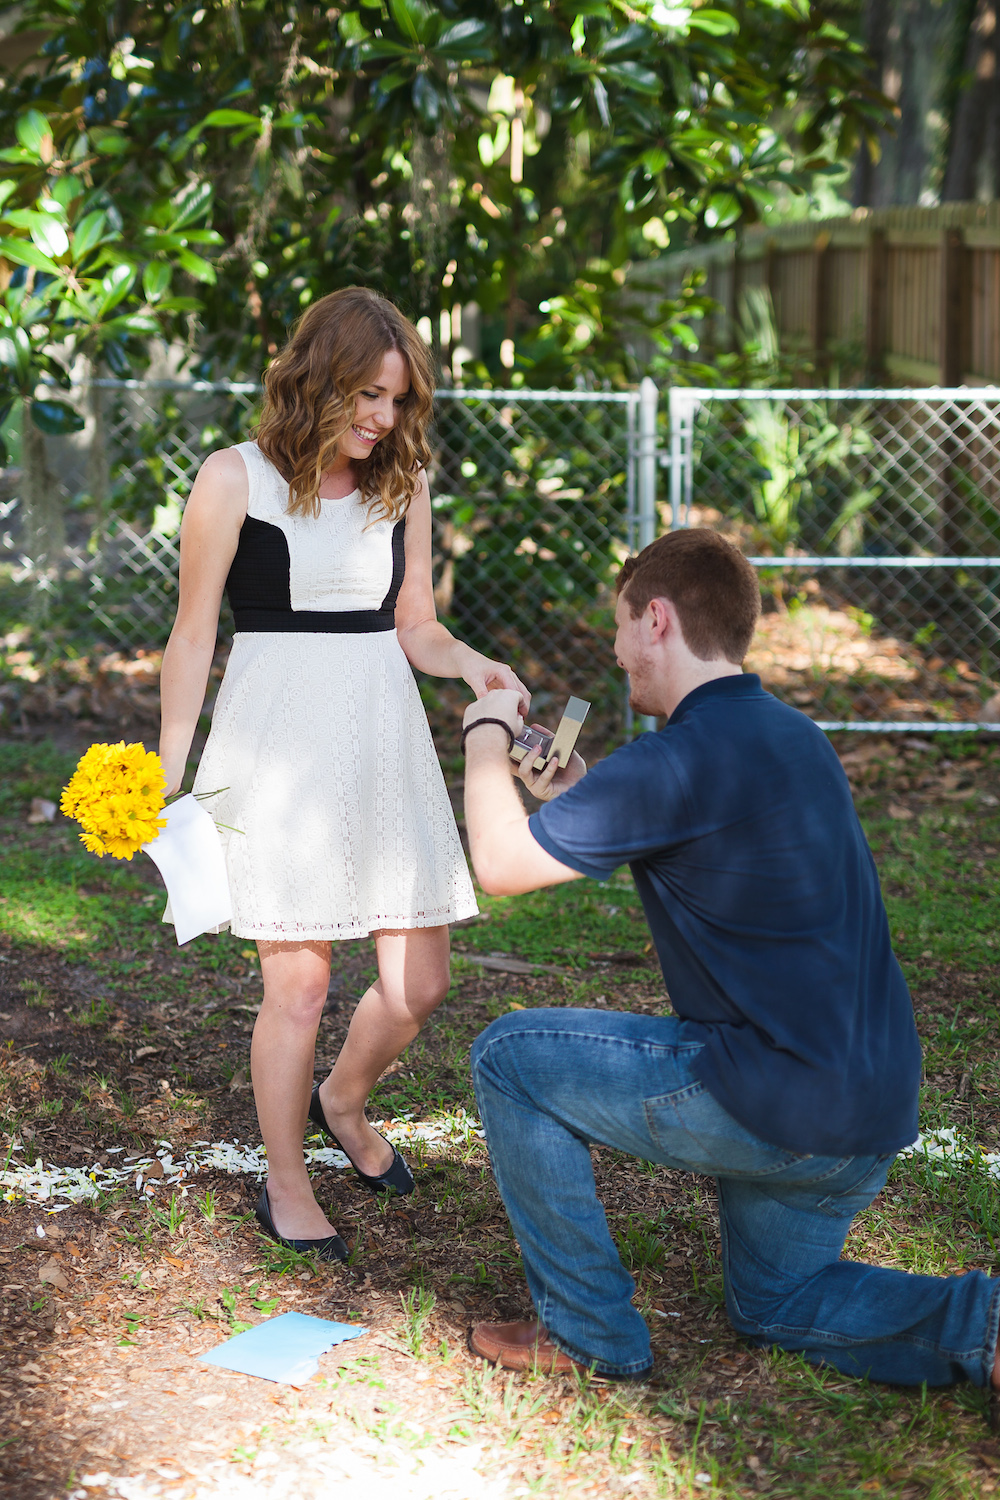 View More: http://trevorandallison.pass.us/andrew-and-meagan-engagement